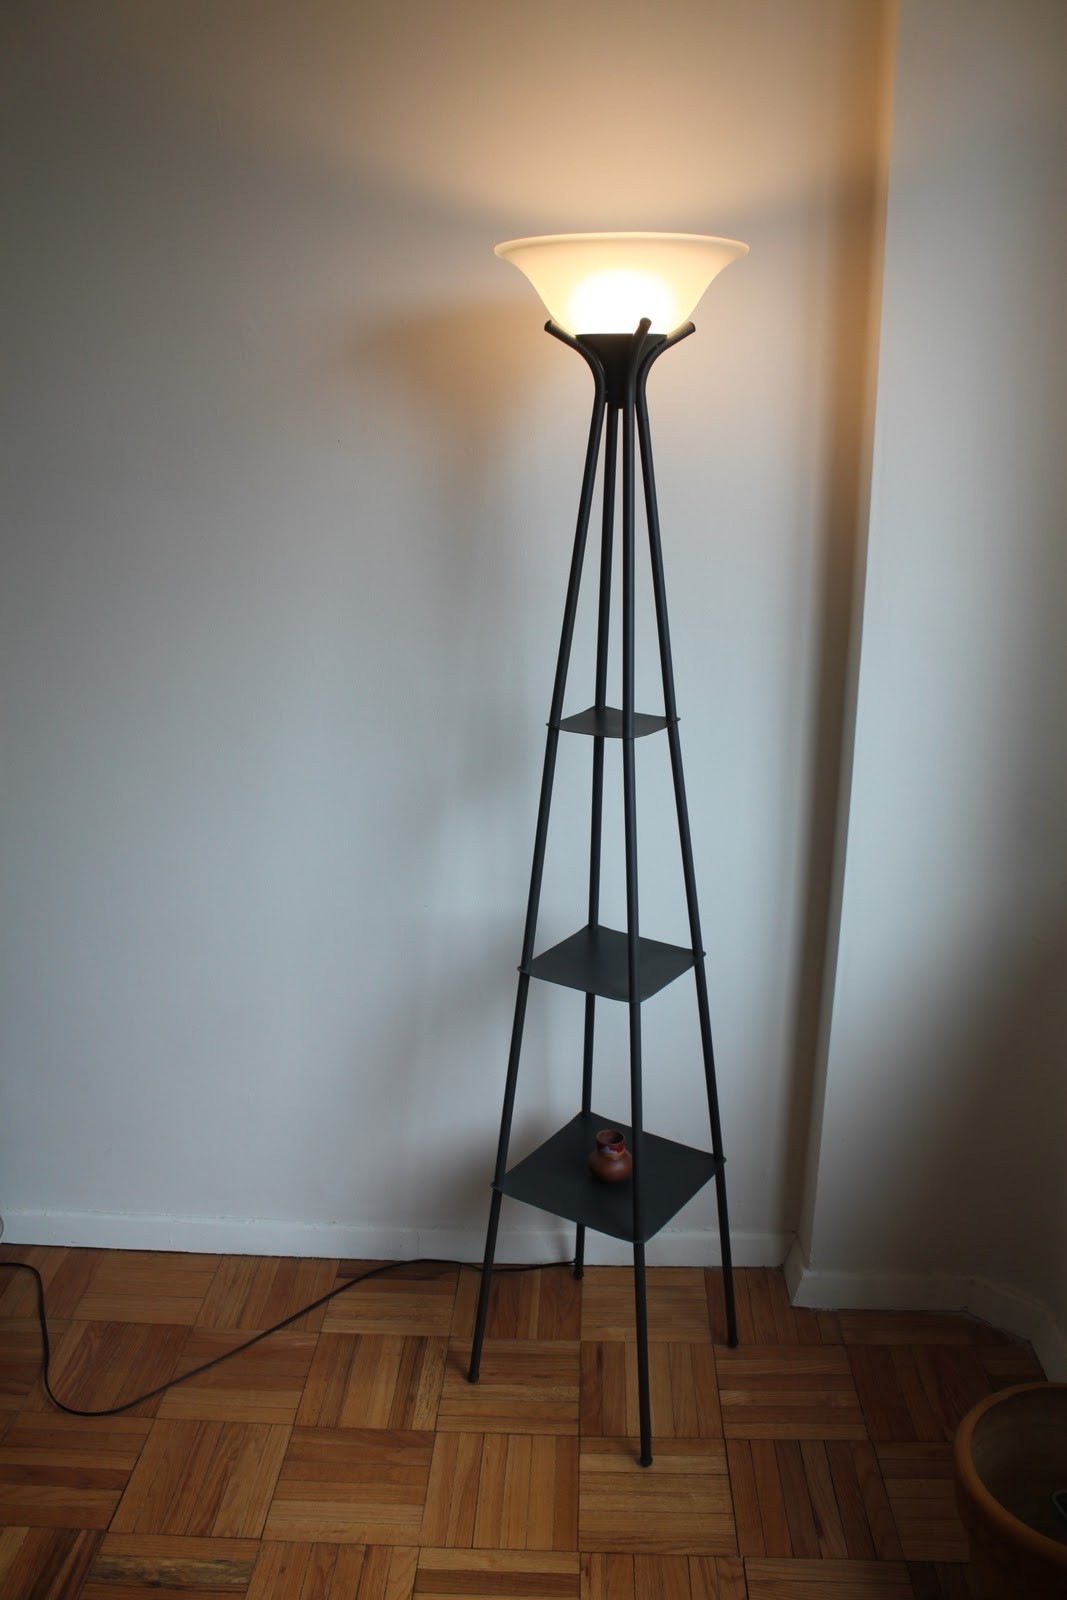 With Ideas Lamp Foter Floor On Shelves rdCWBeoQx